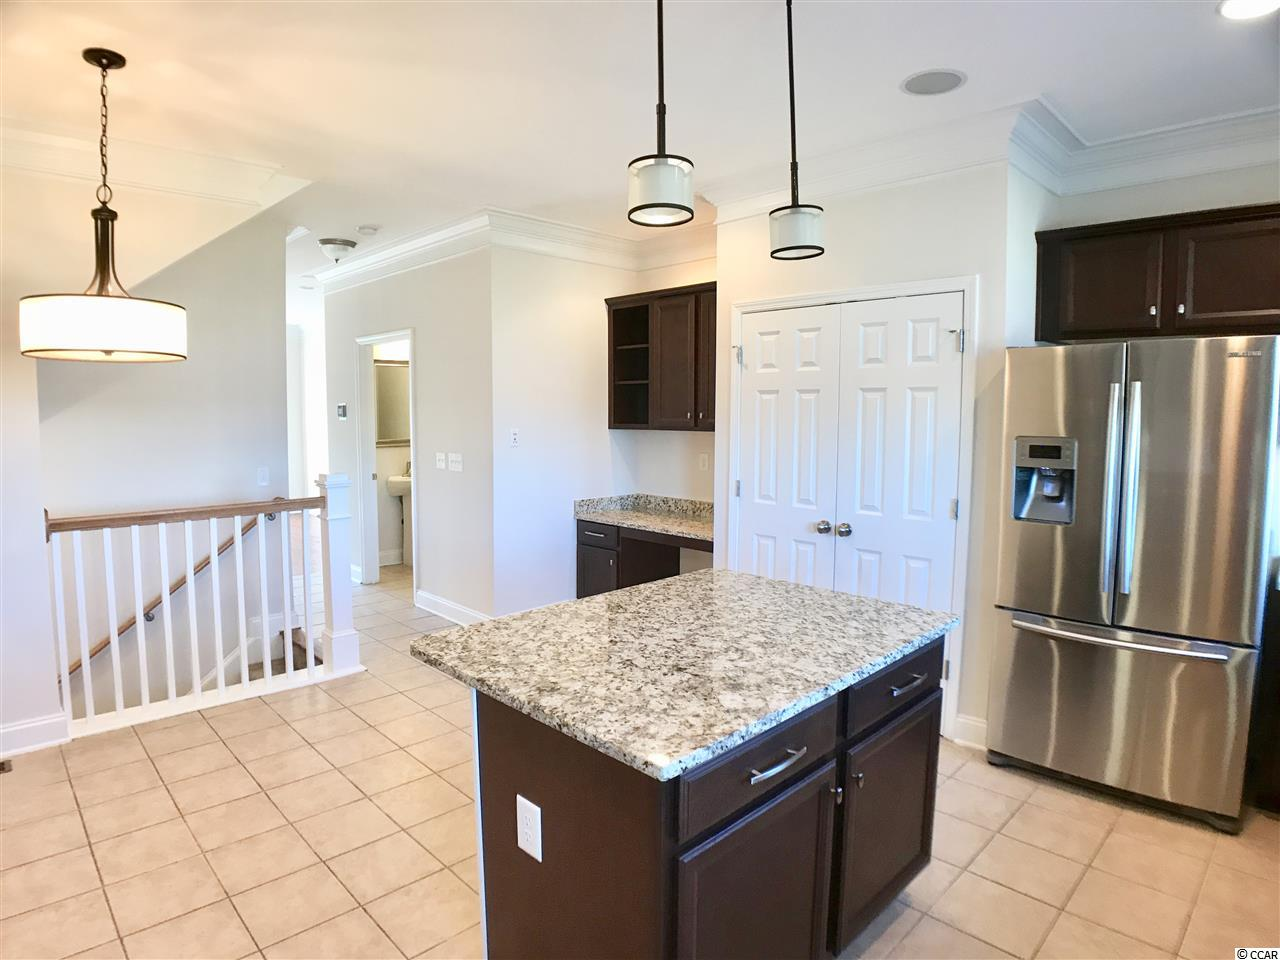 MLS #1720162 at  Market Common, The for sale